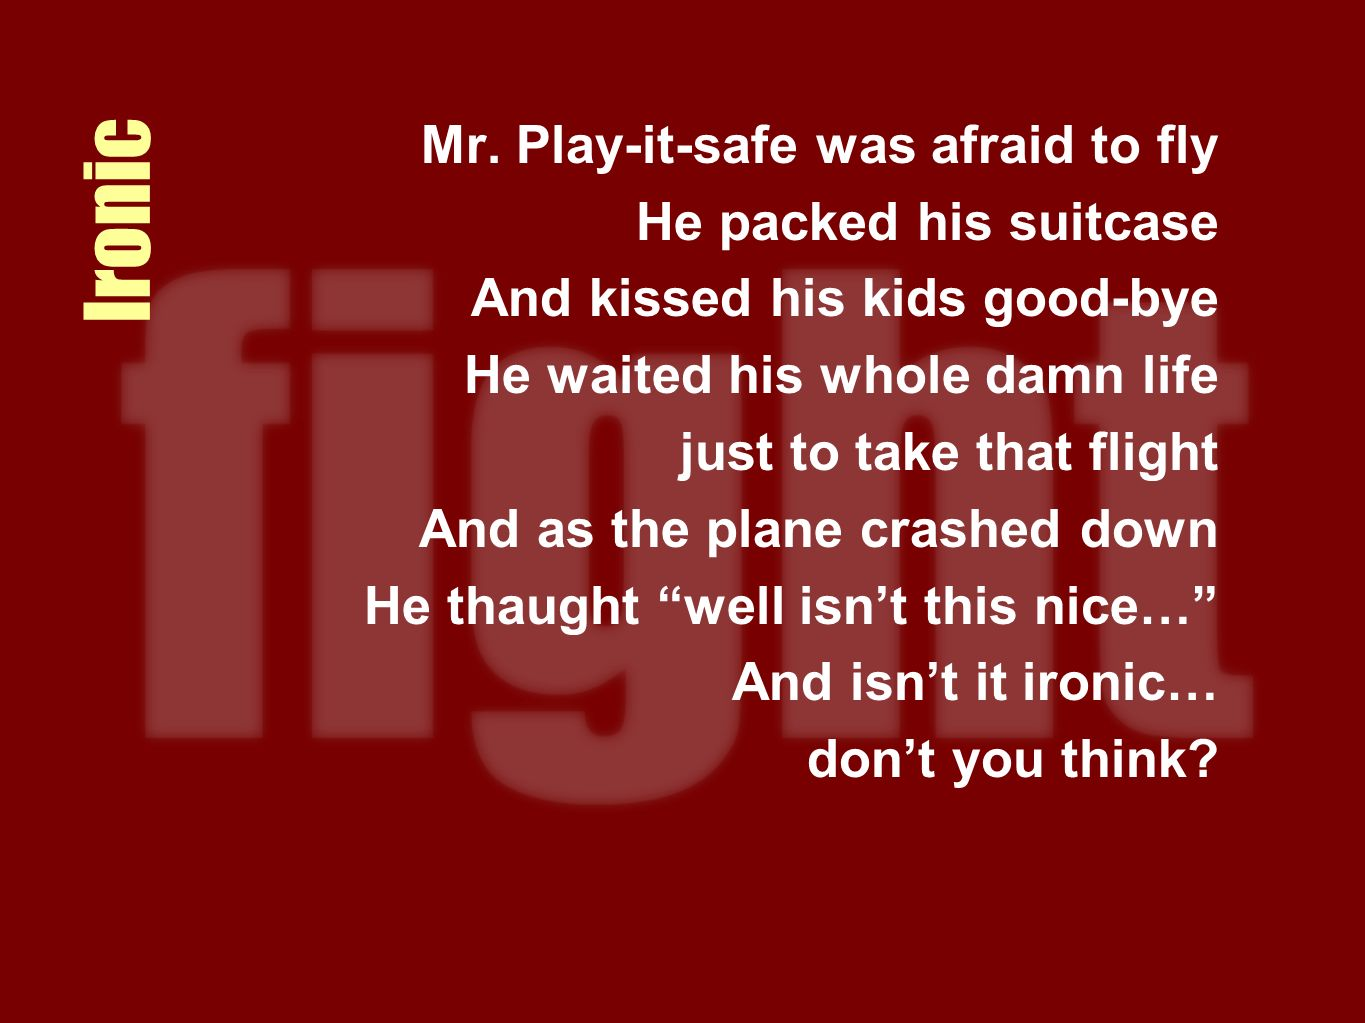 Ironic Mr. Play-it-safe was afraid to fly He packed his suitcase And kissed his kids good-bye He waited his whole damn life just to take that flight A